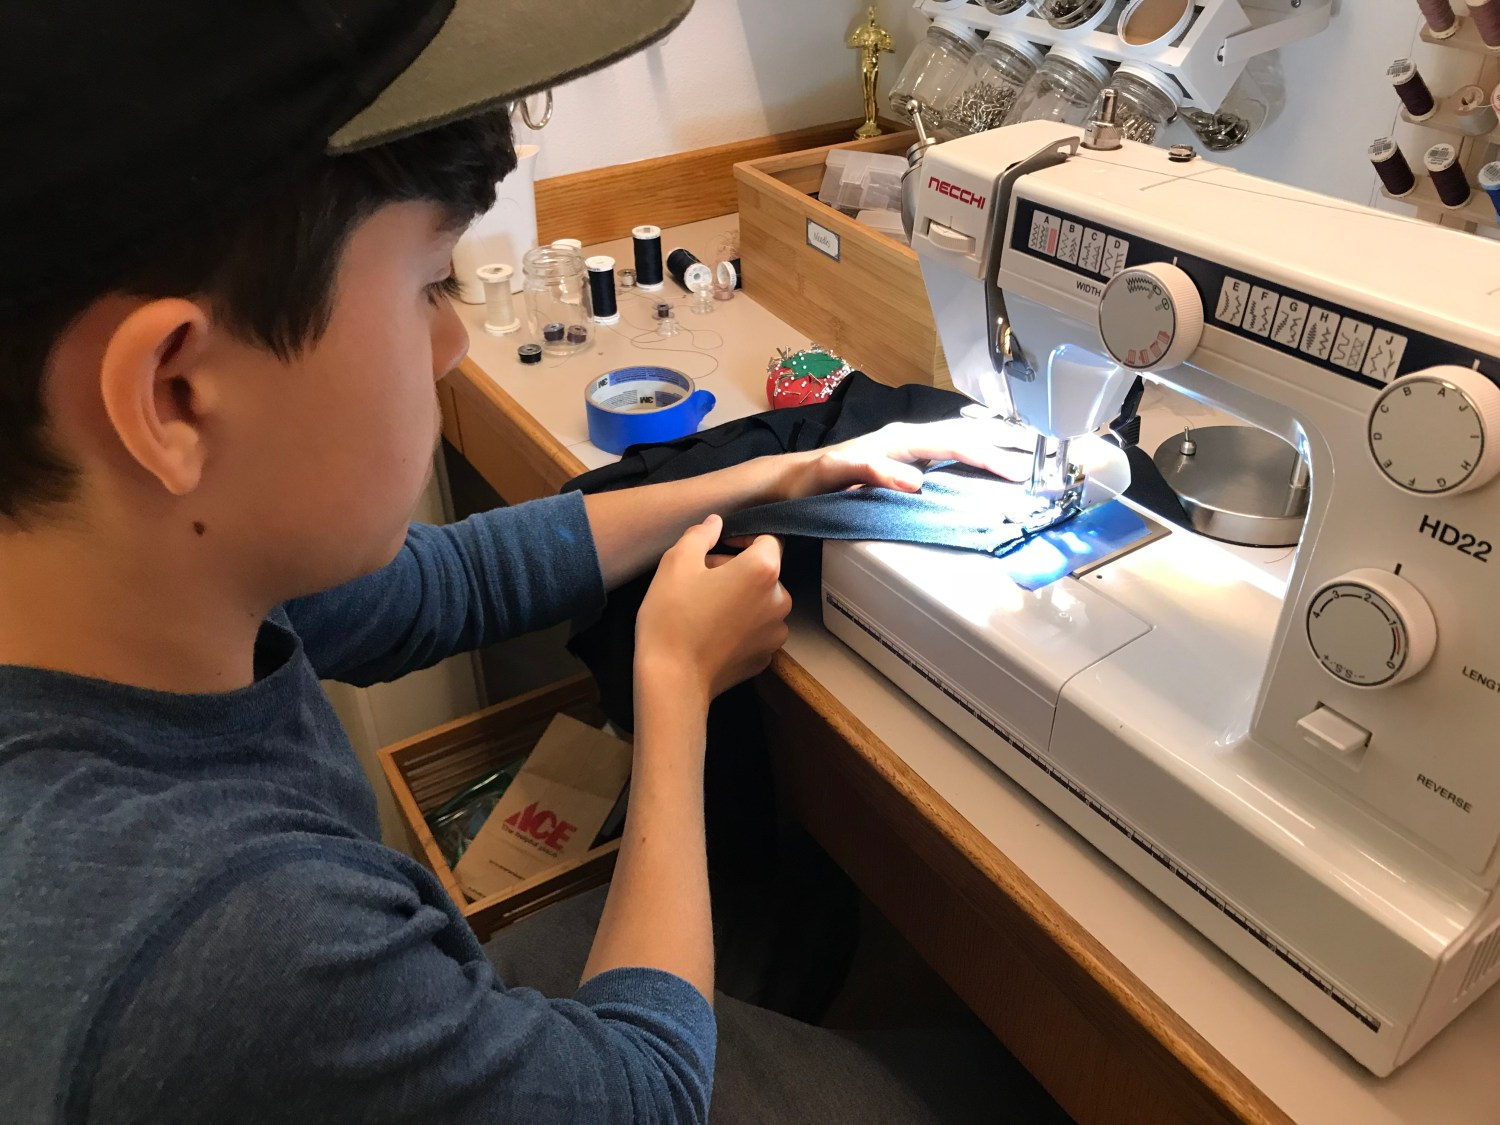 A side view of a teenager sitting at a sewing machine